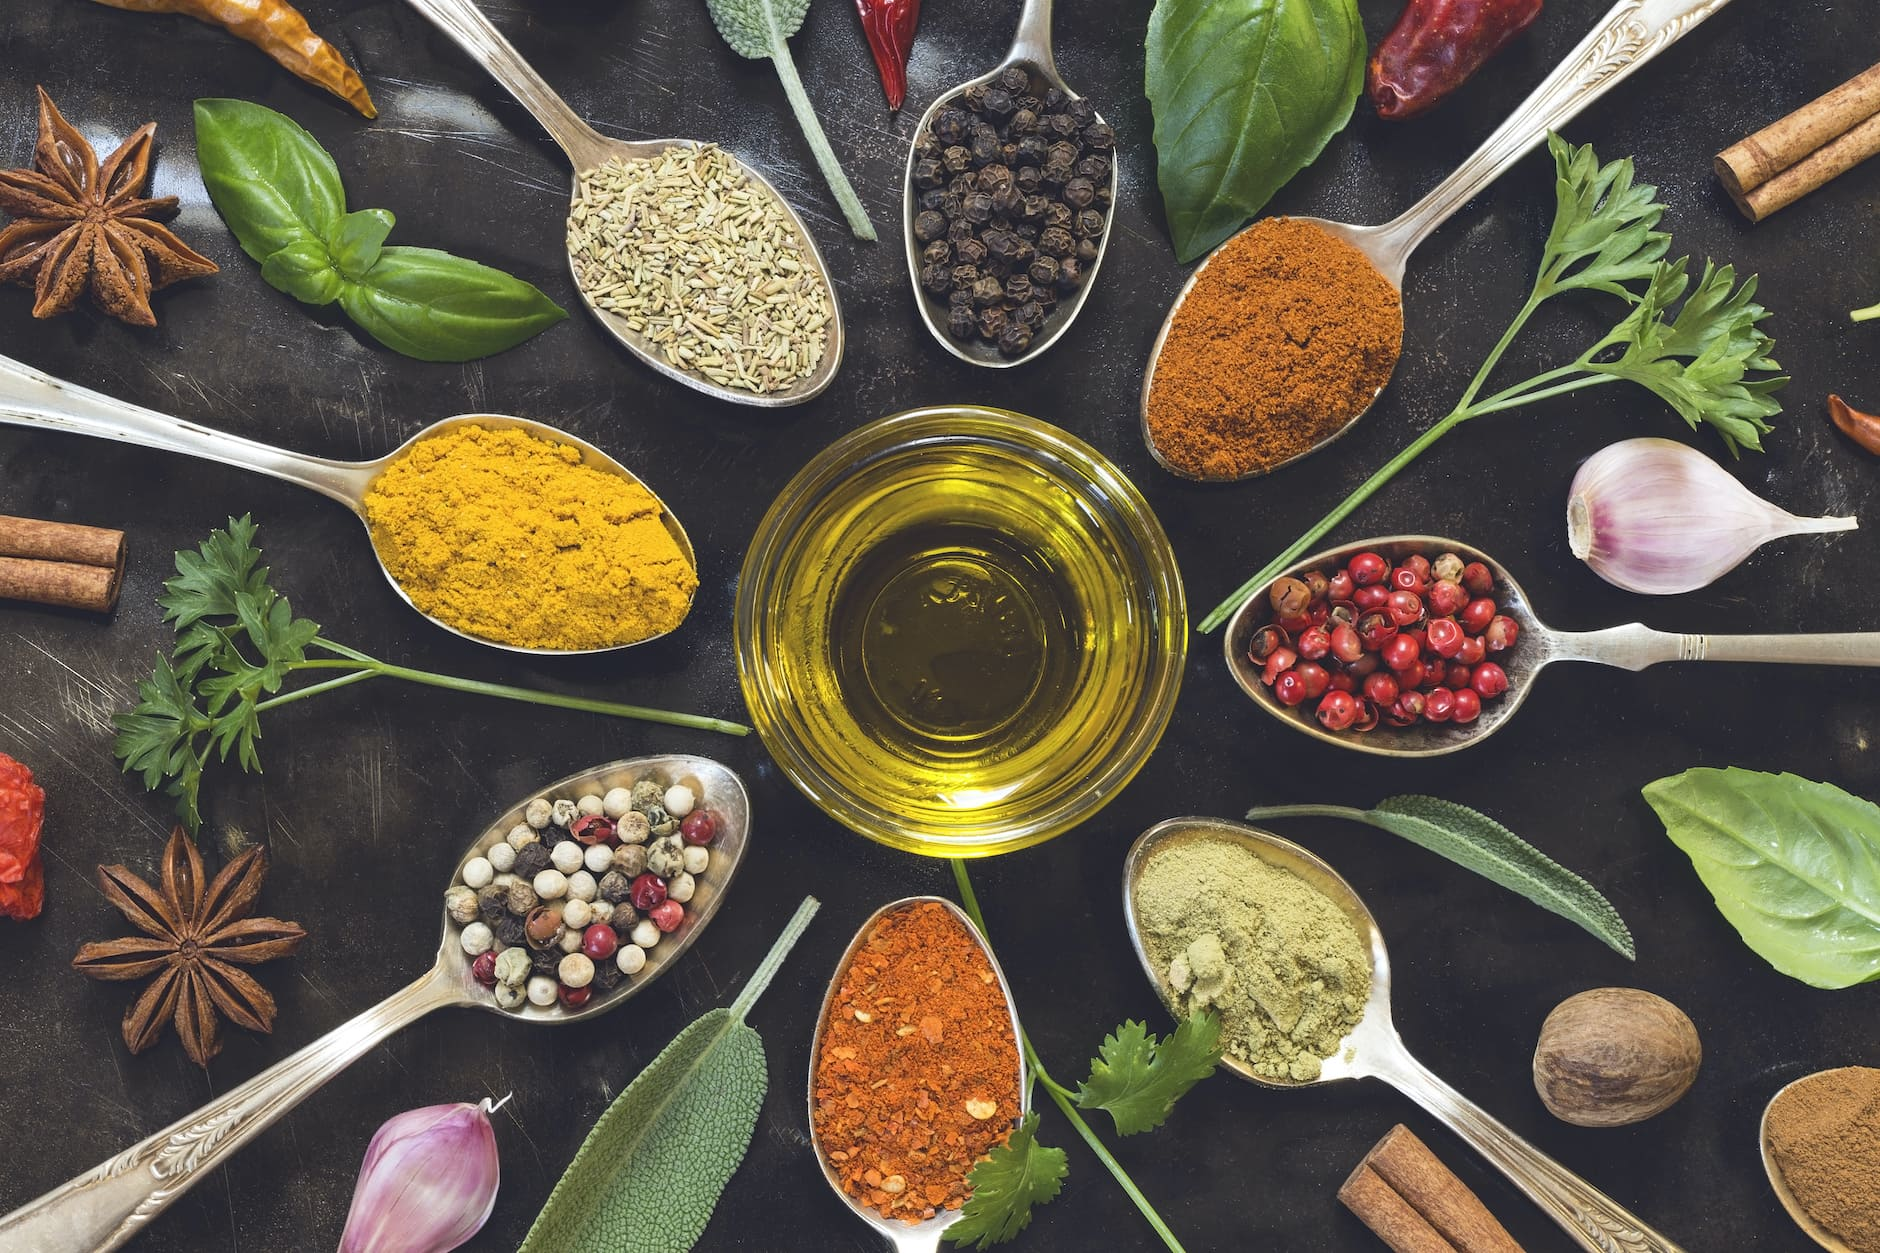 12 Herbs and Spices To Add For Good Healthimage preview